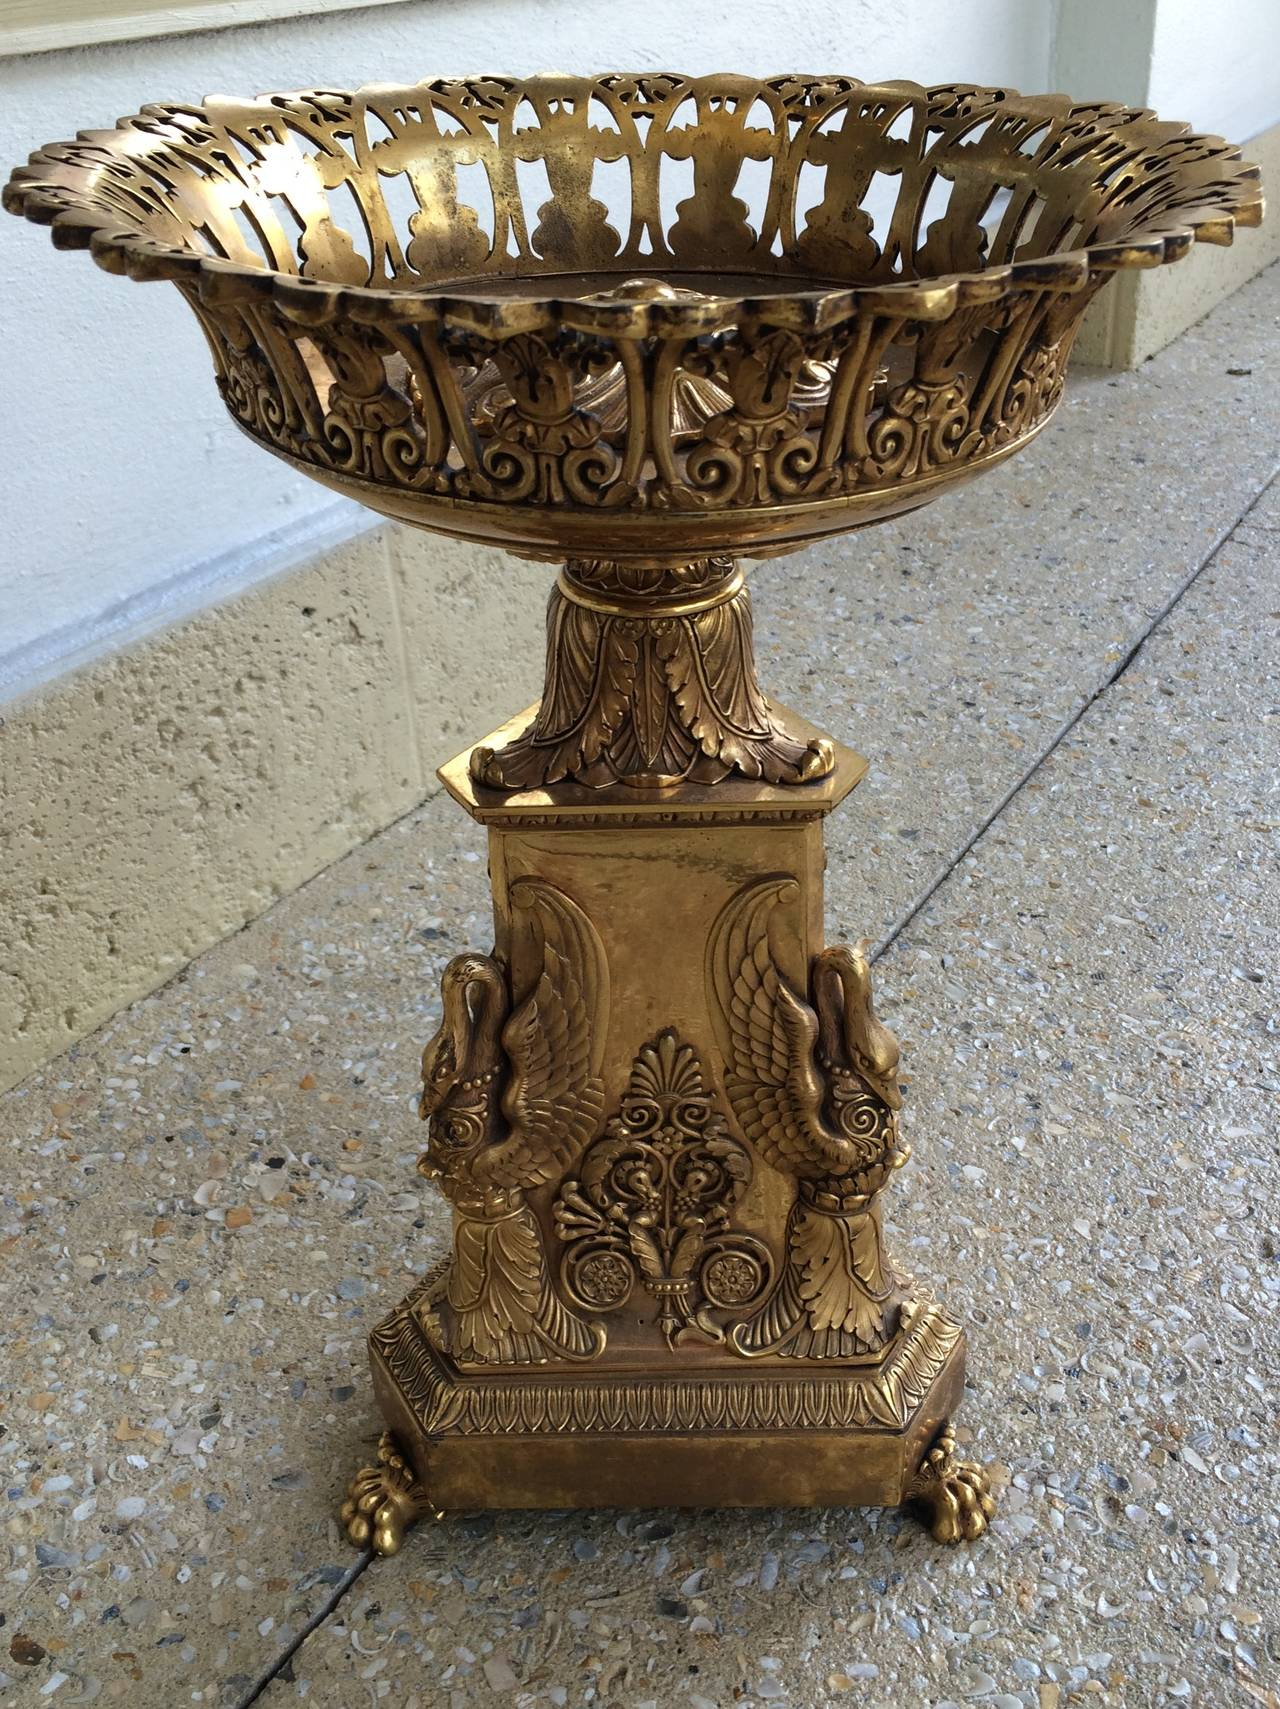 Charles X bronze doré centerpiece with decorative mounts including swans, acanthus leaf, and claw footed base, circa 1820-1830.